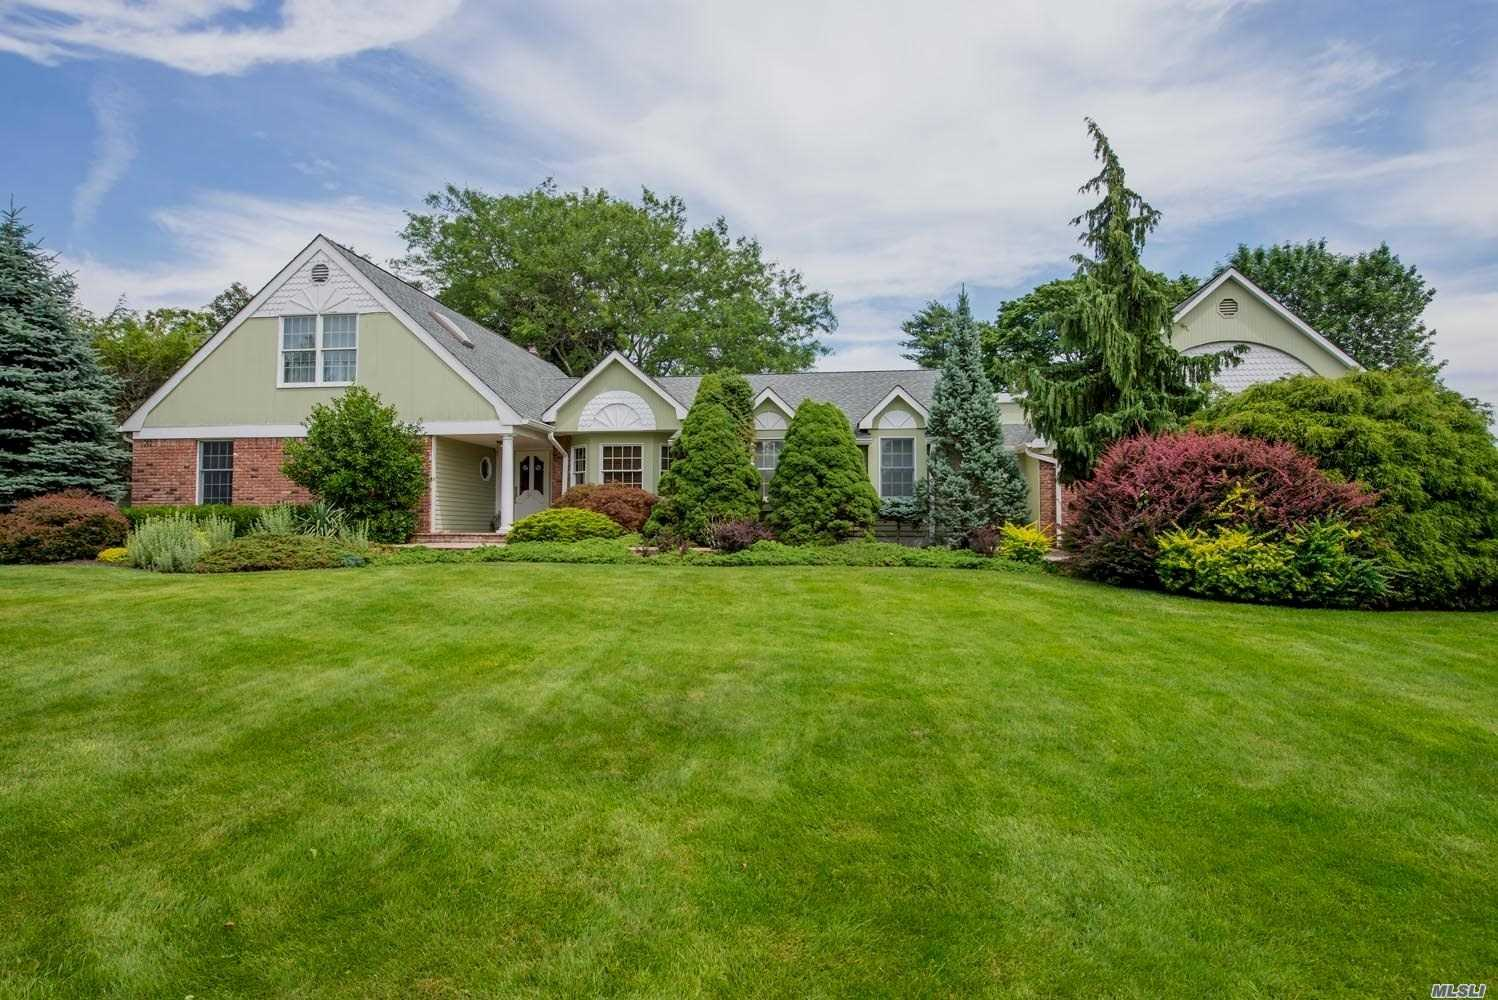 Fantastic Sprawling 5 Bdrm, 5 Bath Farm Ranch W/ Assoc. Docking & Tennis. Features Include: Additional Mother-In-Law Suite (MBR, Full Bath, Side Entrance), Finished Basement, 3 Car Garage W Steel Beam Support, IG Pool, on lush .85 Acres.